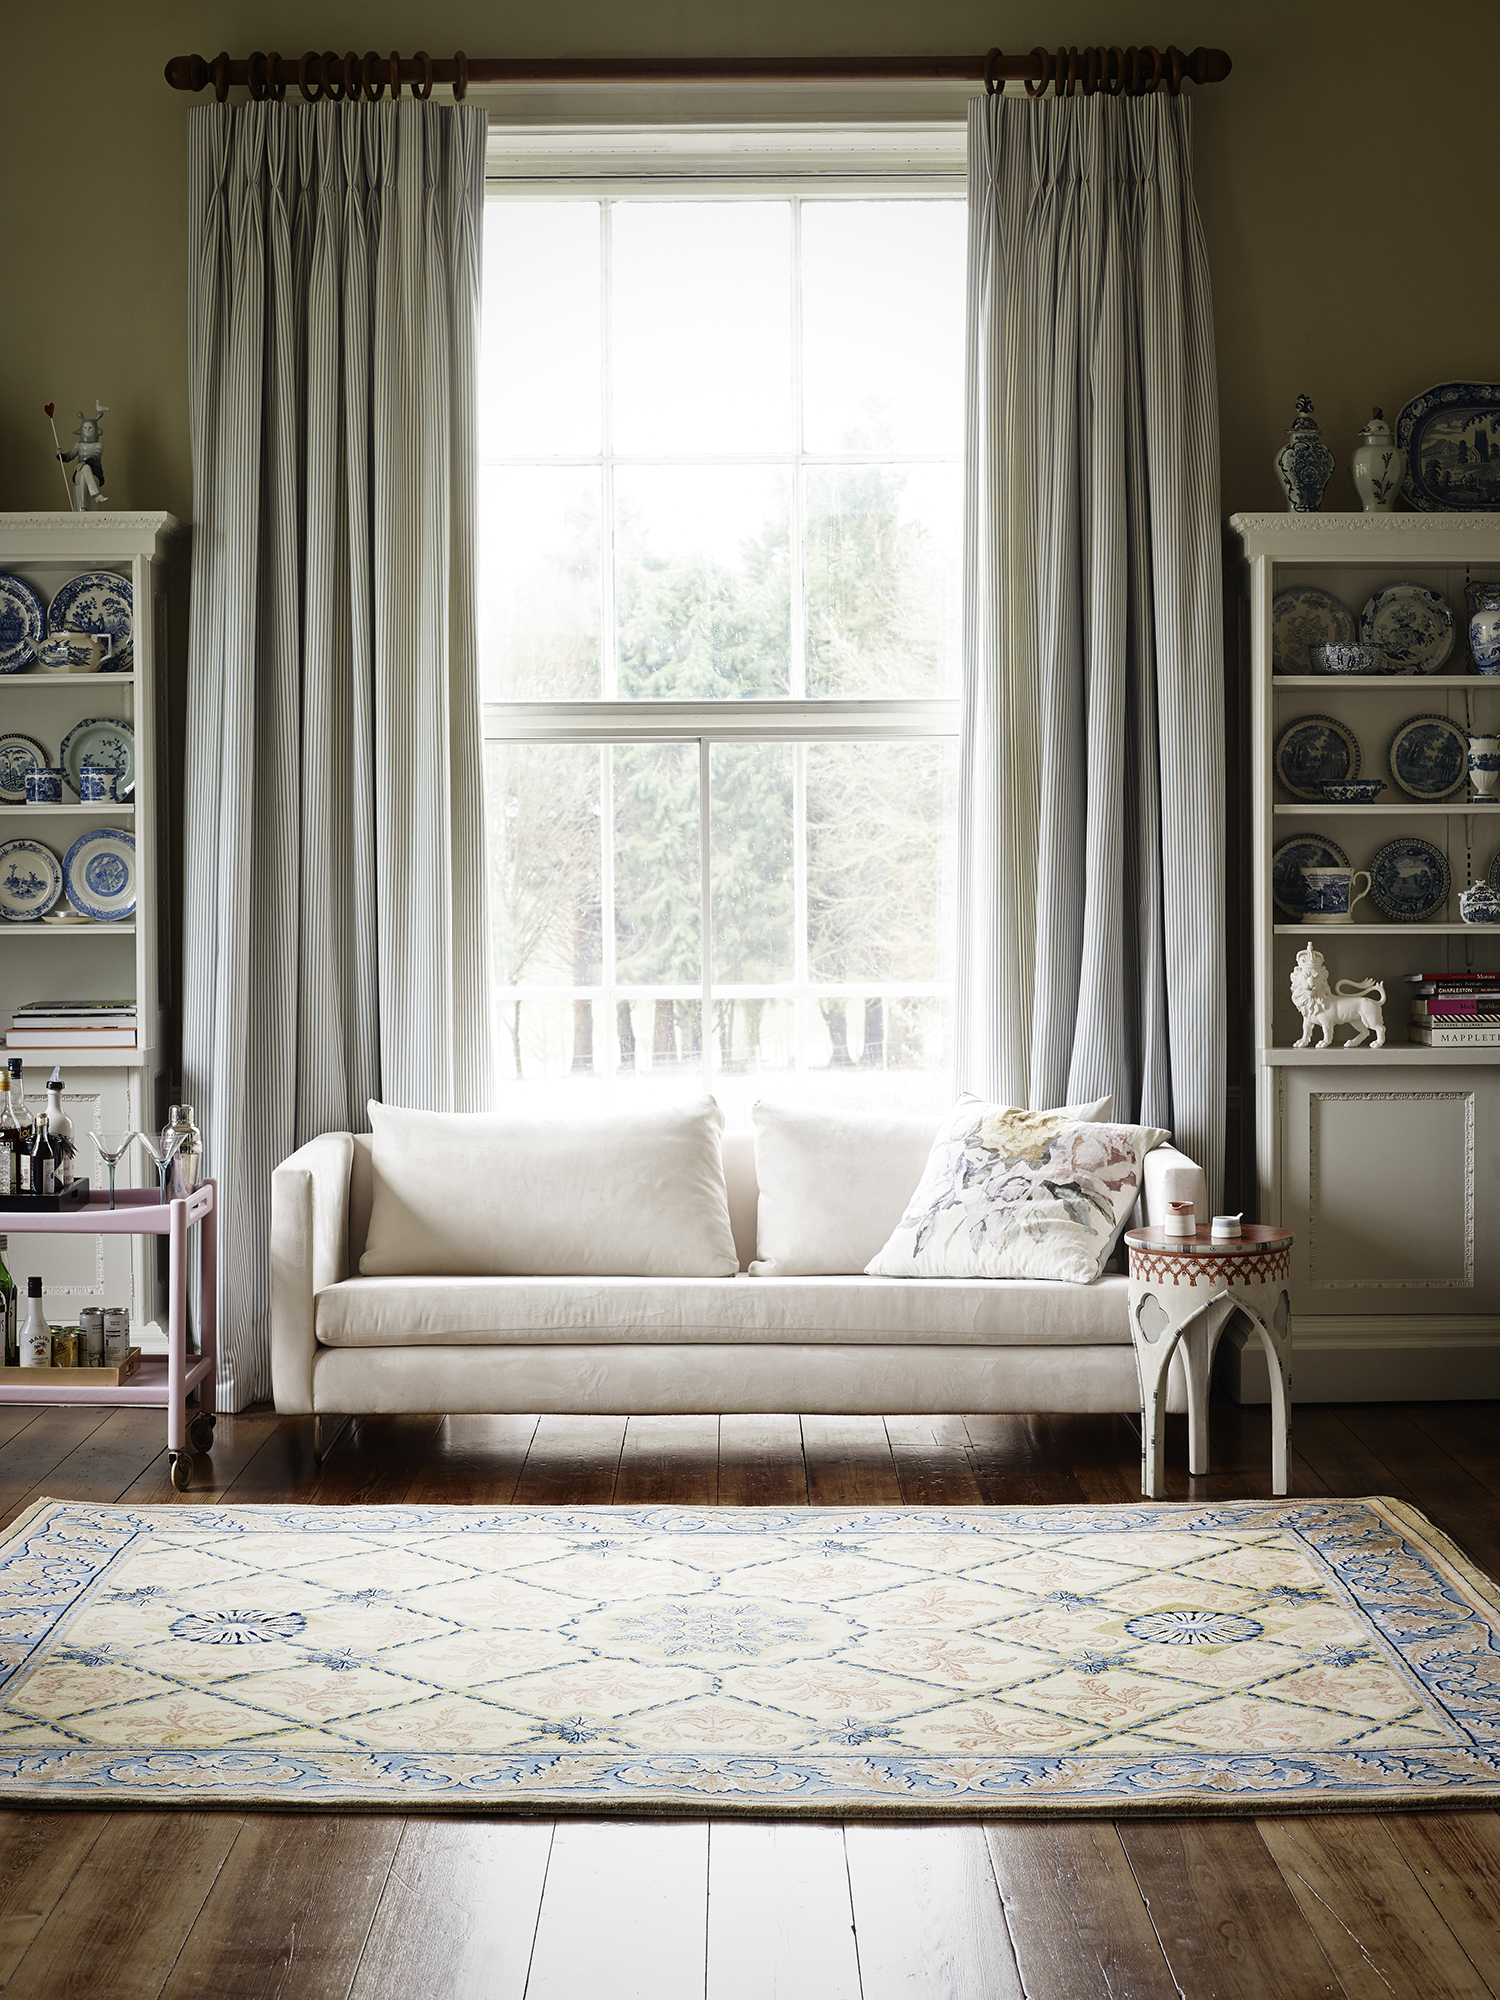 AURELIE_Go Bold Collection_By Loomah Bespoke Carpets & Rugs_Styled By Lucy Gough, Photography By David Cleveland